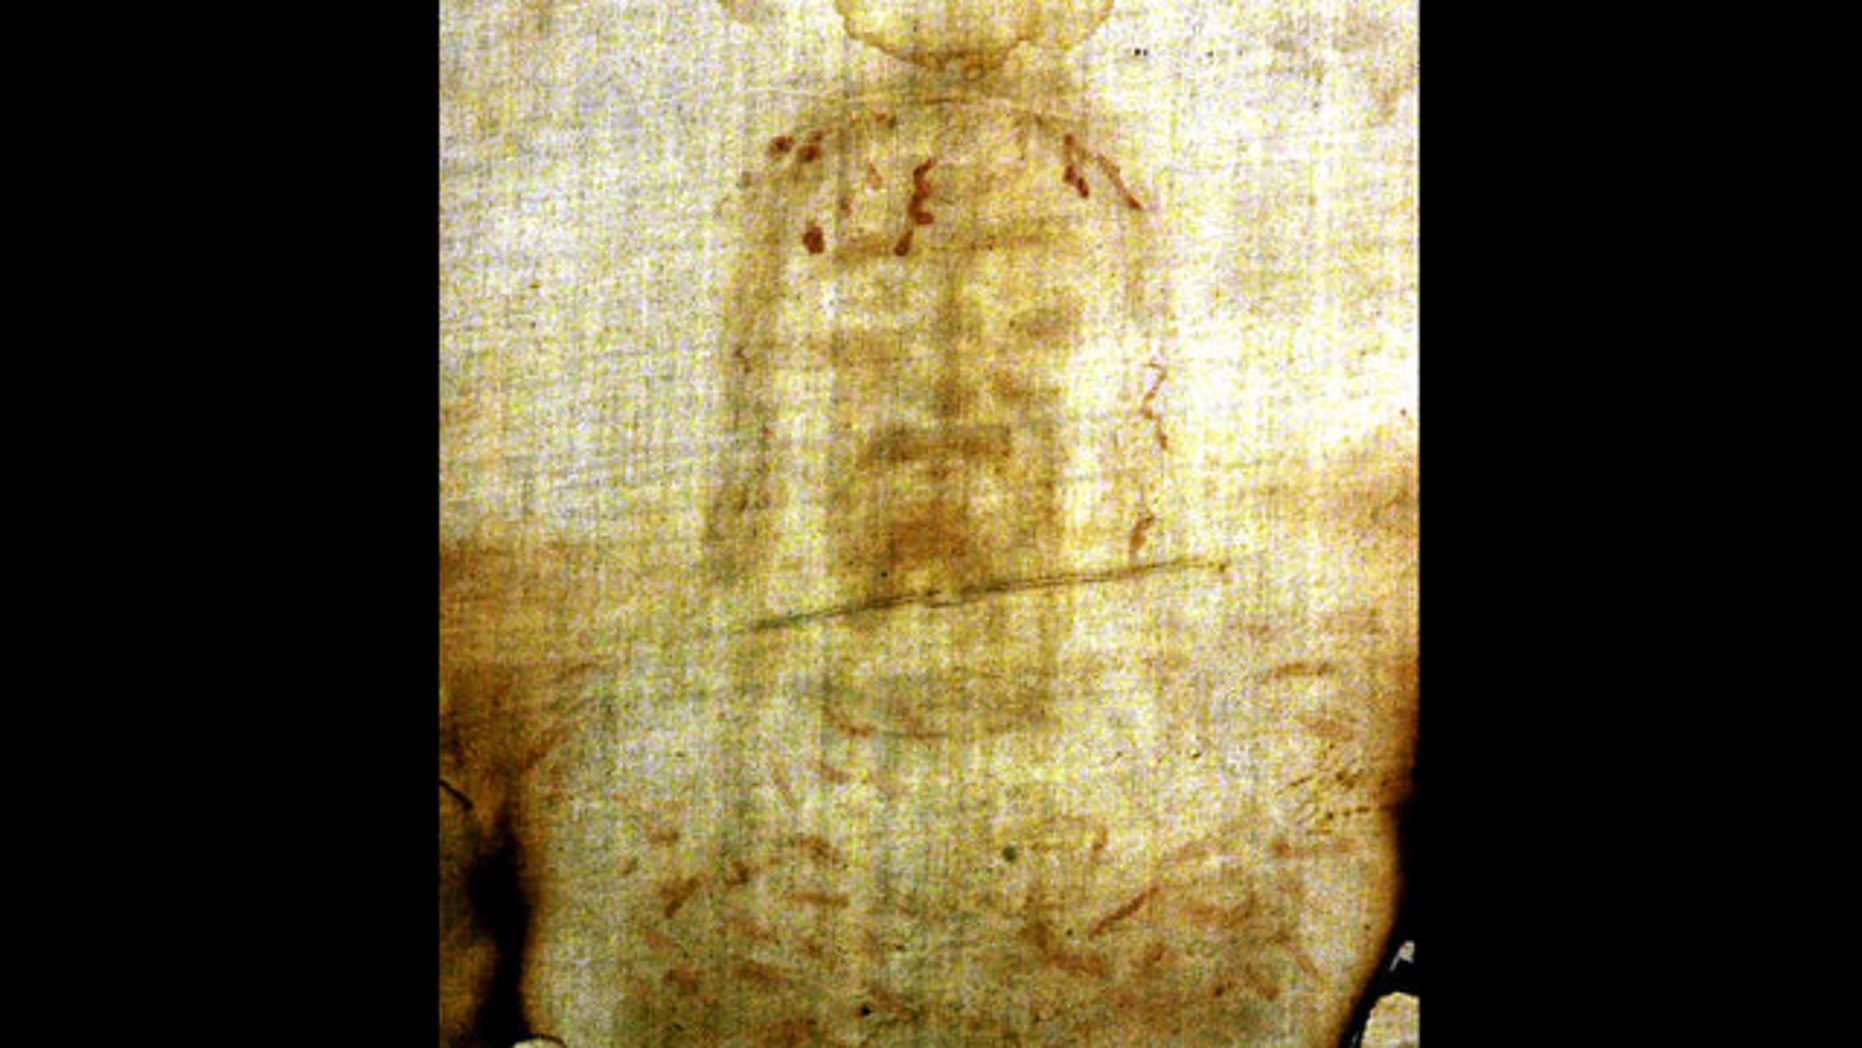 New research suggests Shroud of Turin dates to Jesus' era